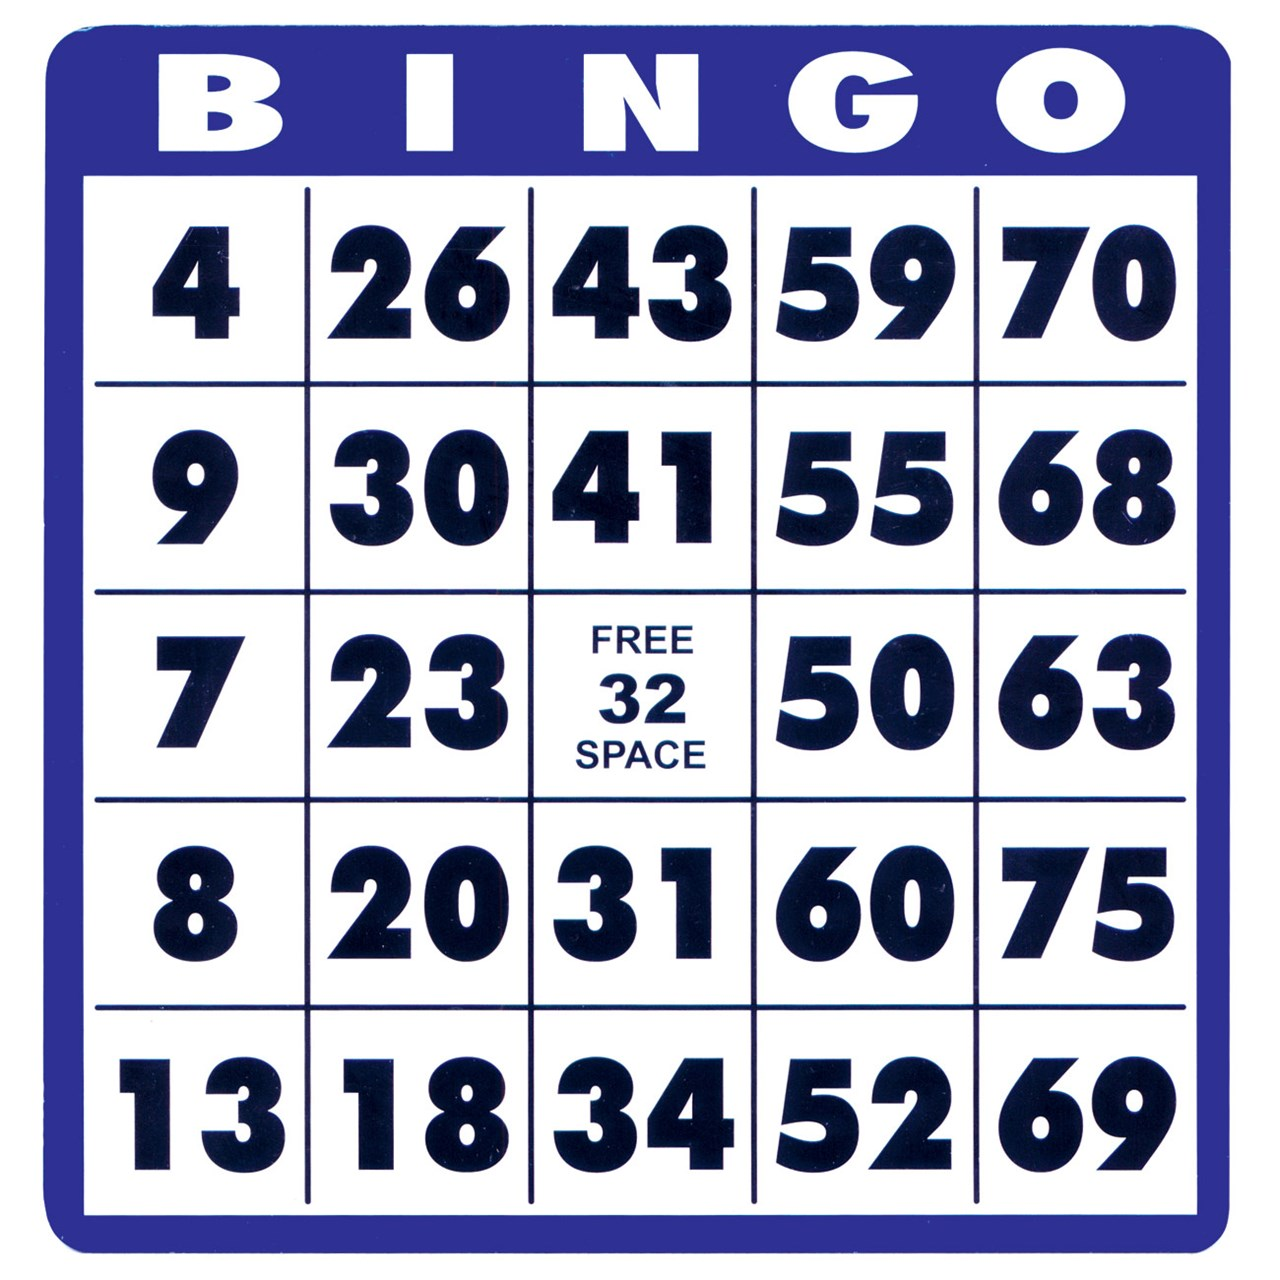 0008916-low-vision-bingo-cards-10-cards.